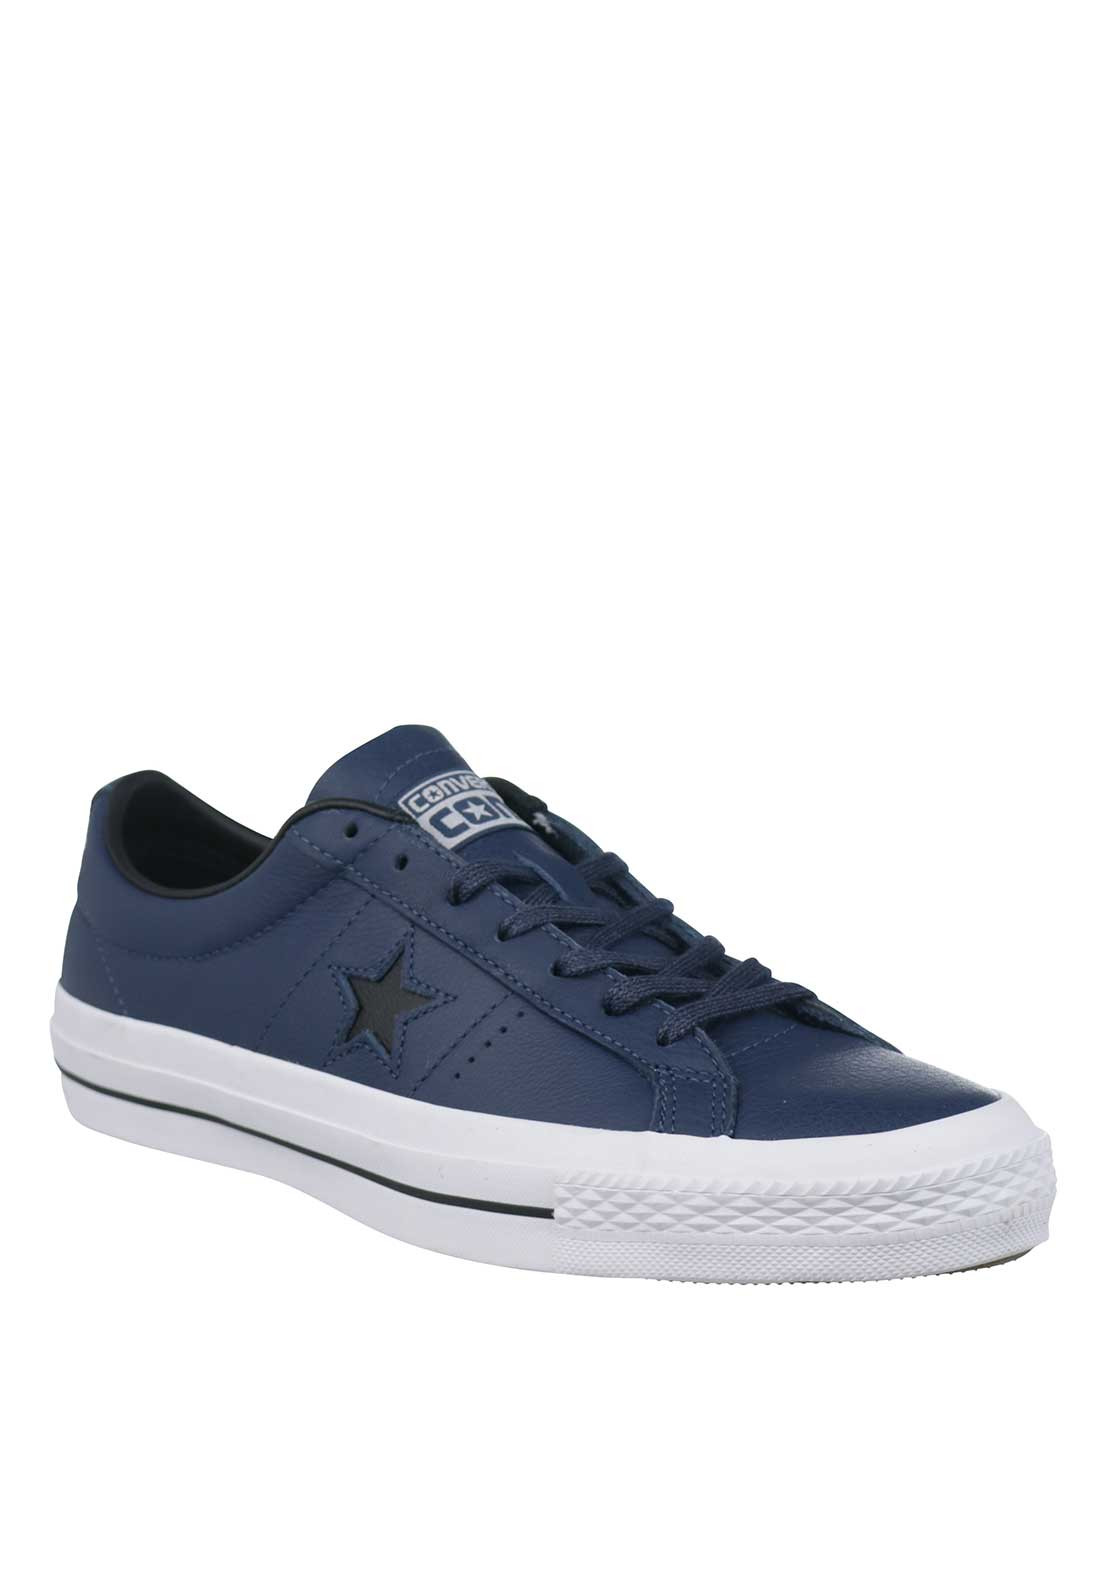 Converse Cons Mens Leather Trainers, Navy